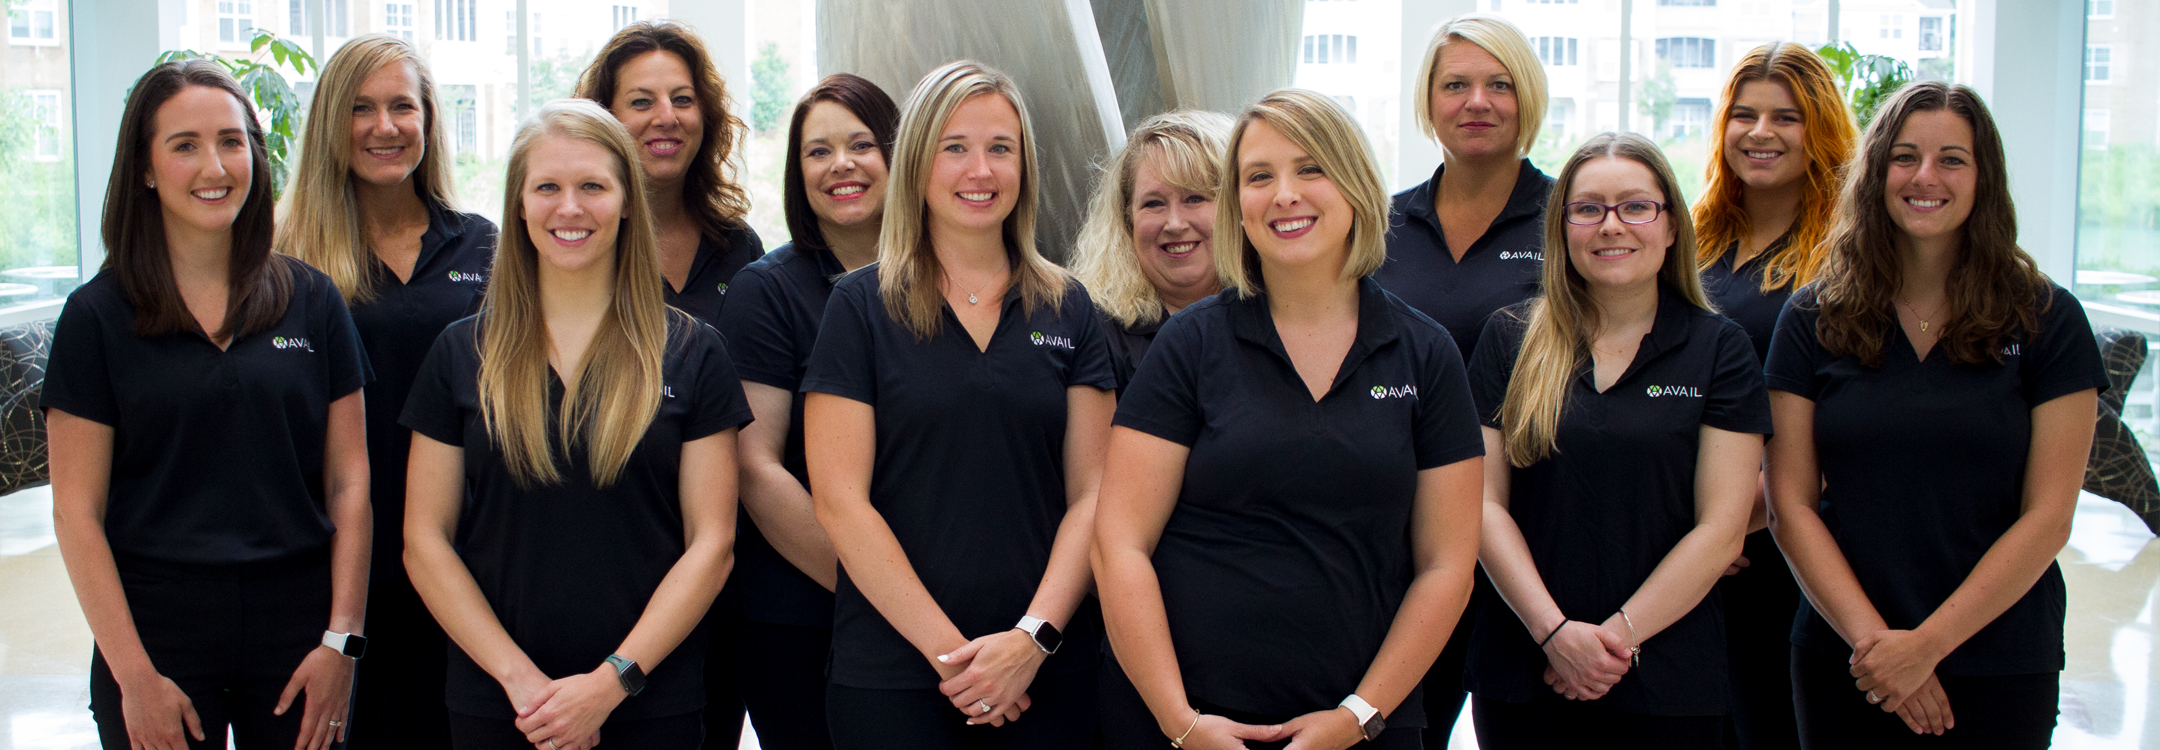 12 female employees wearing AVAIL polos and smiling